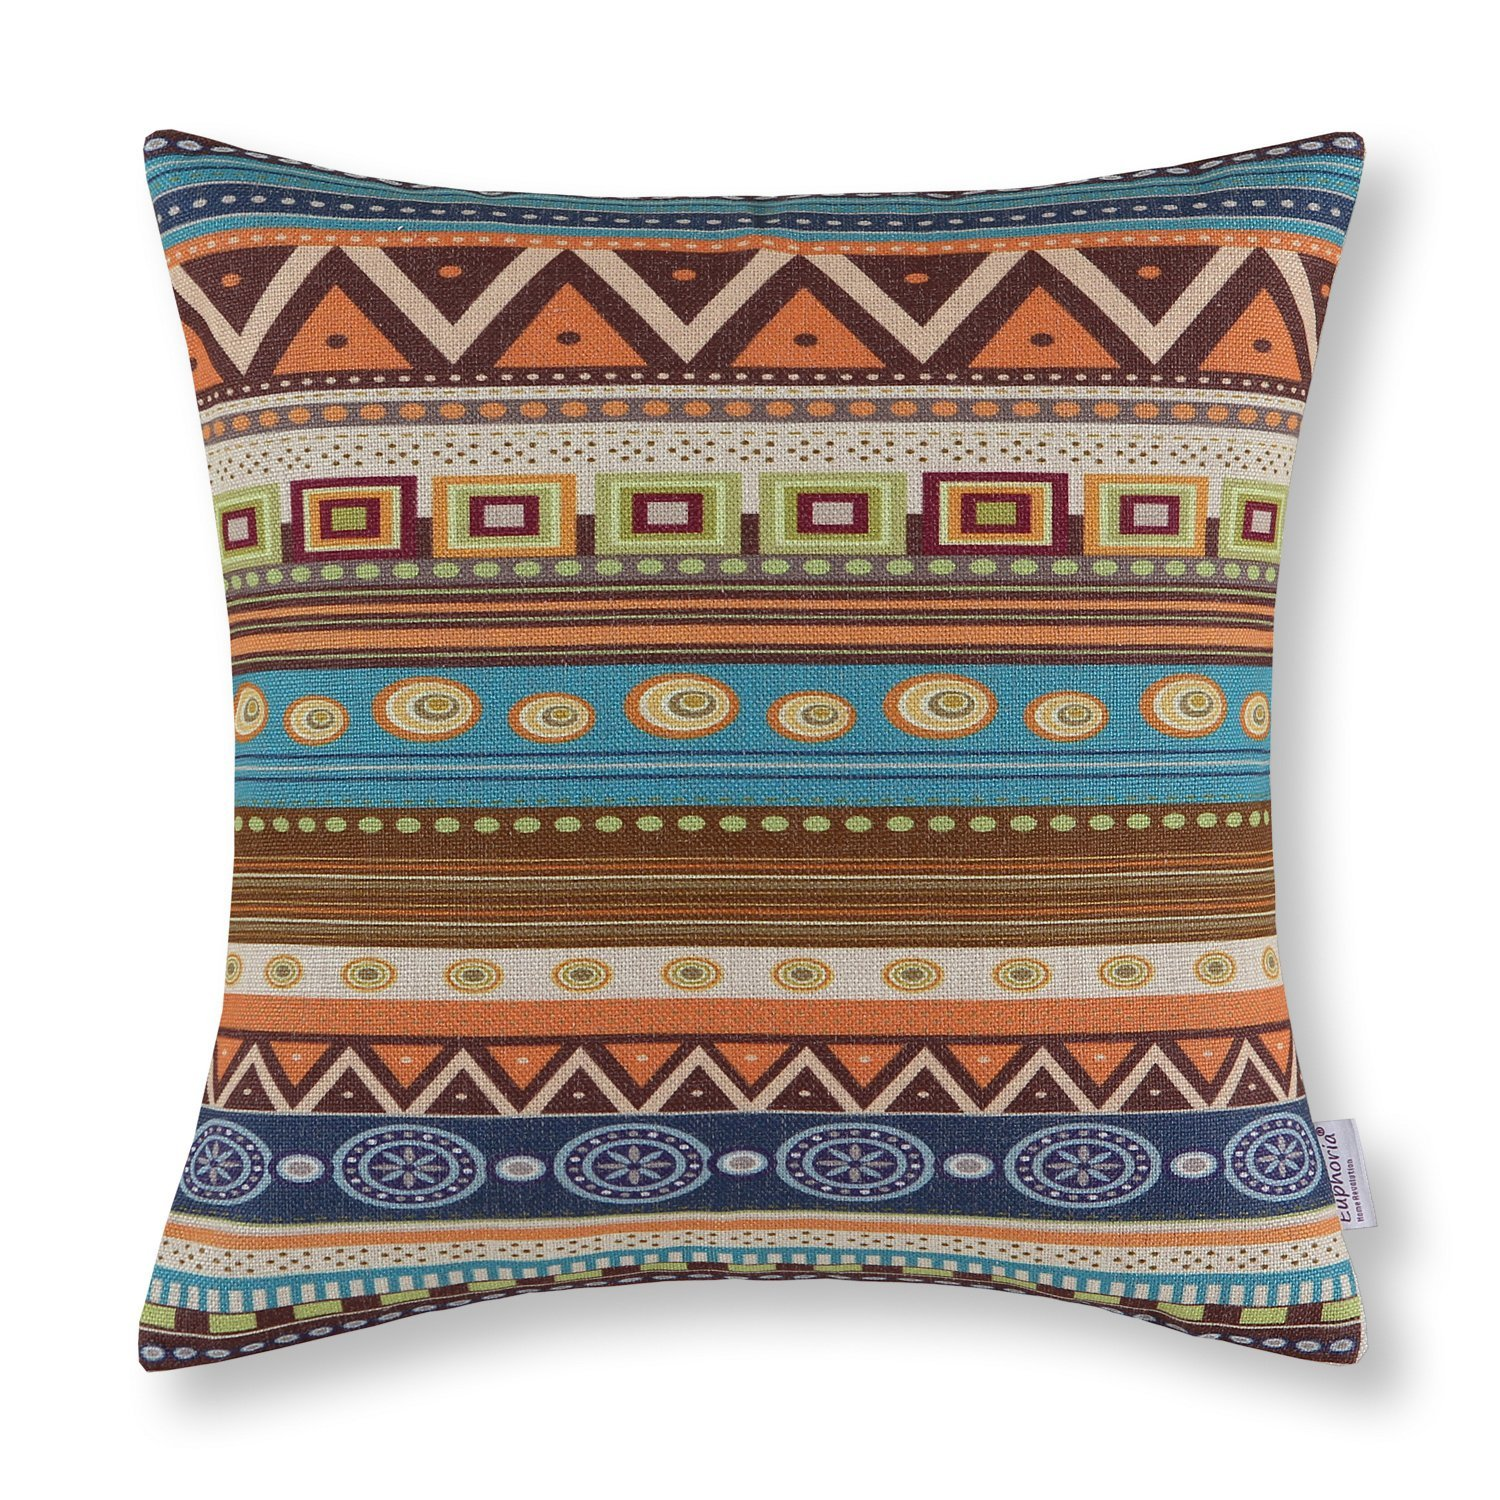 CaliTime Cushion Cover Throw Pillow Shell Geometric Figure 18 X 18 Inches, Vintage Southwestern Design